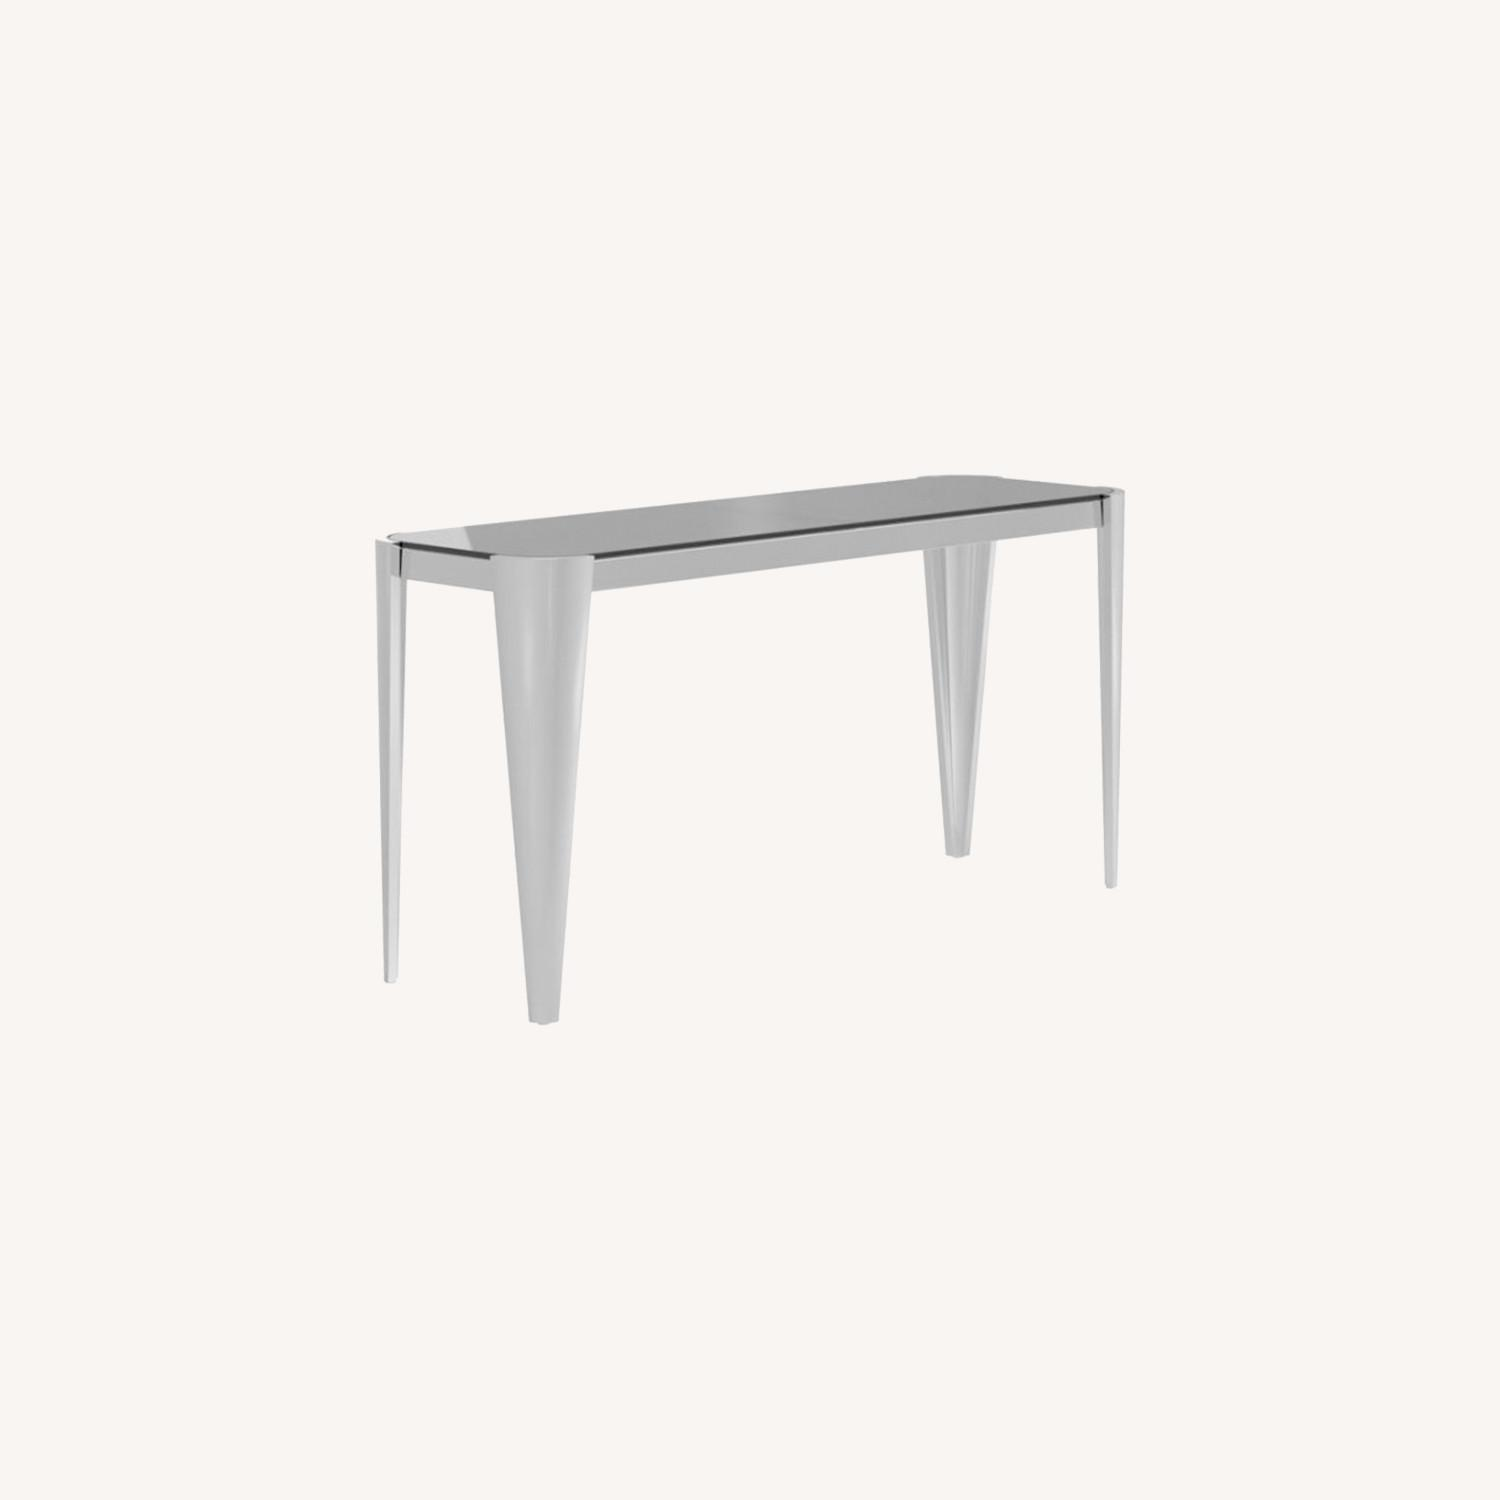 Sofa Table In Silver W/ Grey Tempered Glass Top - image-5